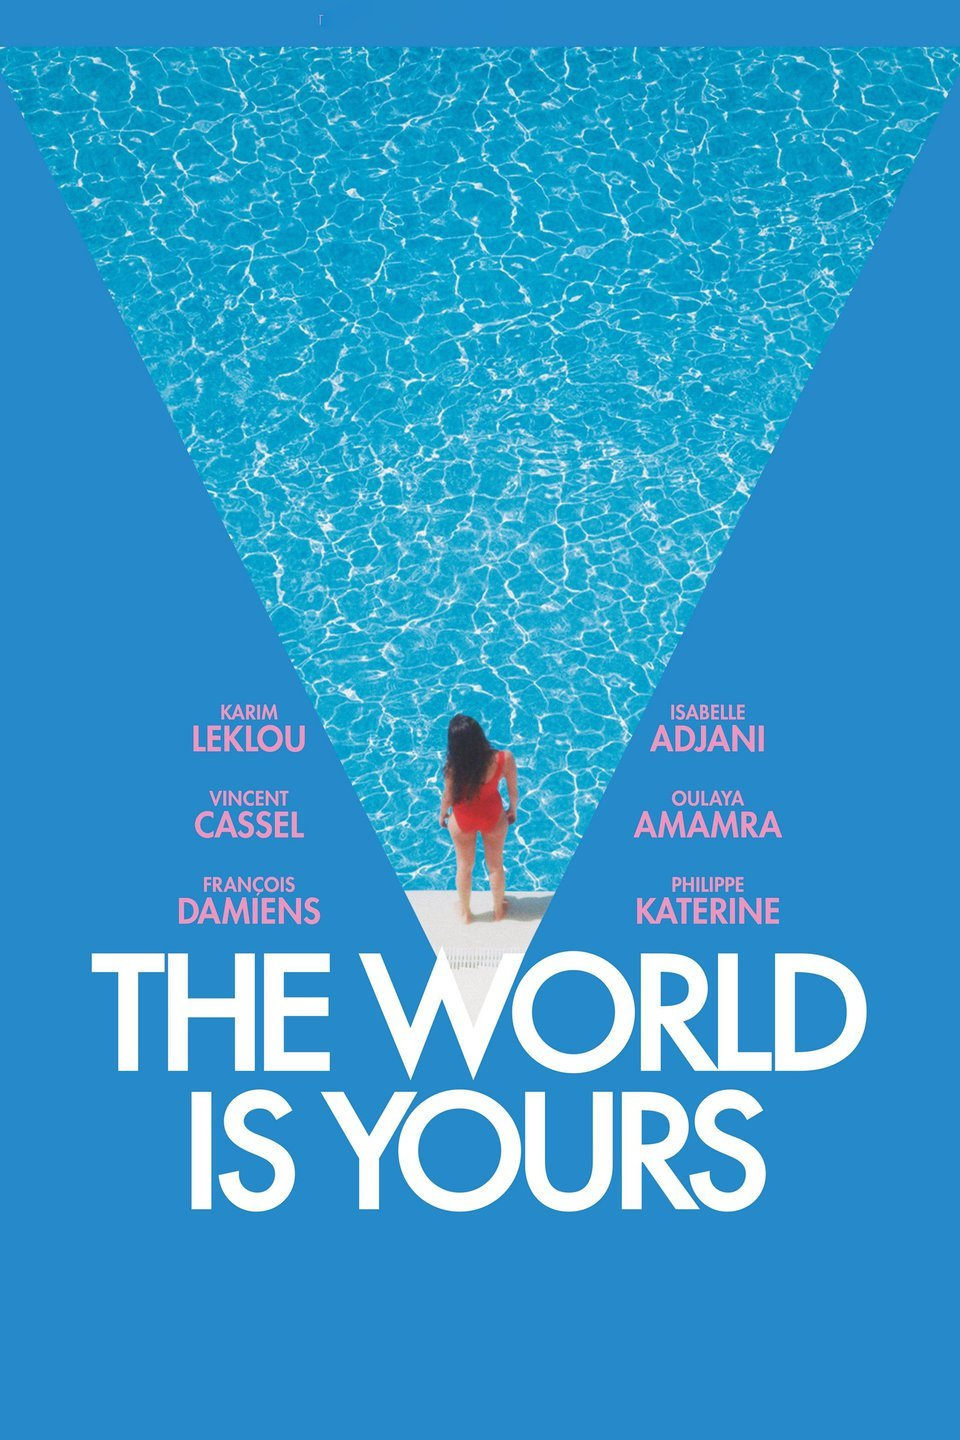 The World is Yours: Weds/Thurs 8pm Screening (6:30pm on sundays)